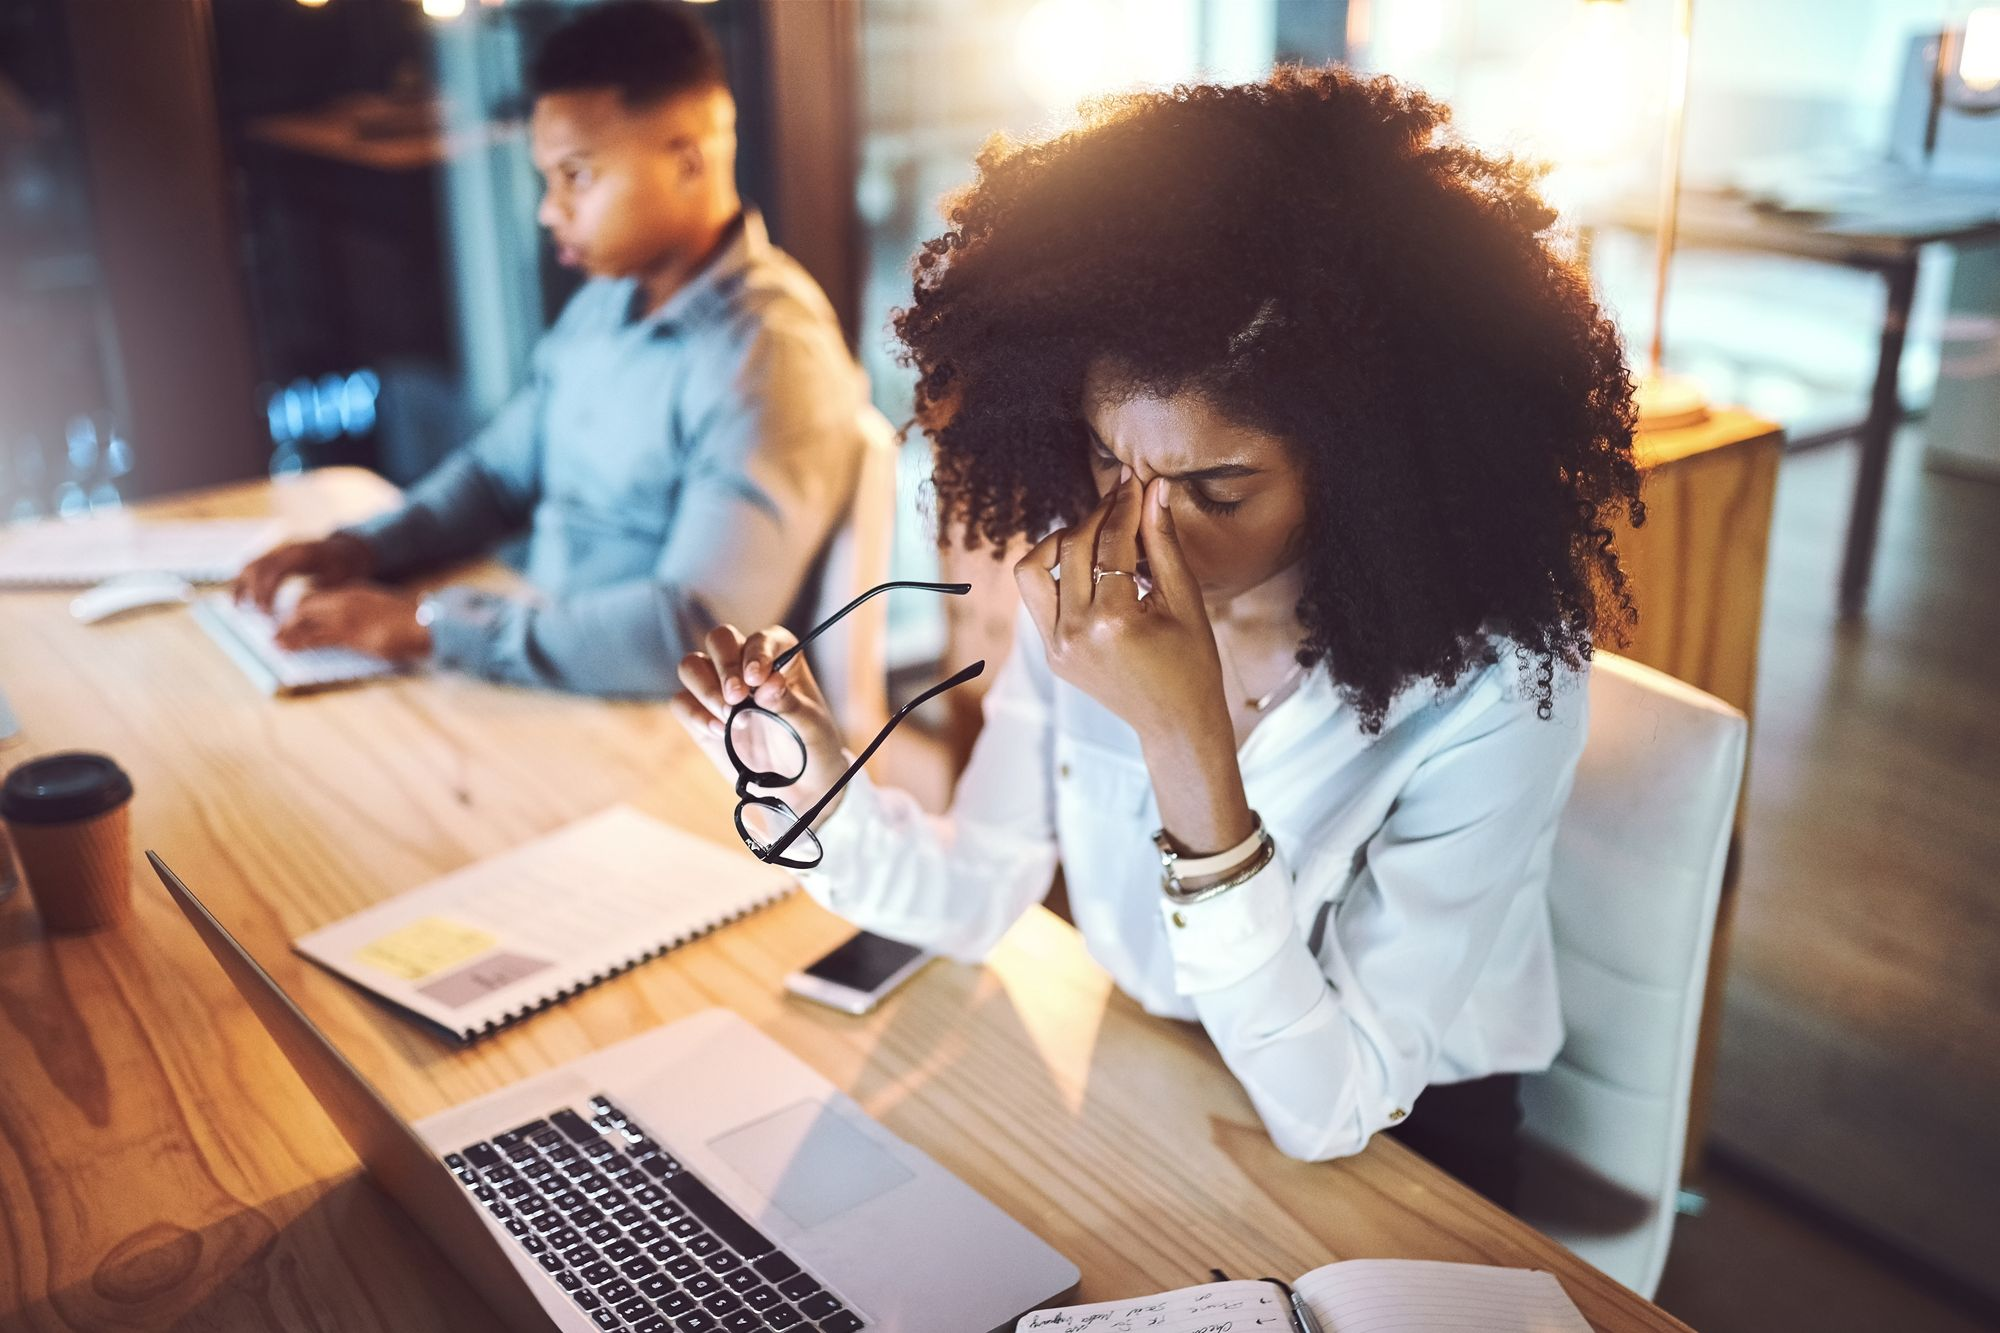 The Unexpected Source of Employee Burnout (and What You Can Do About It)